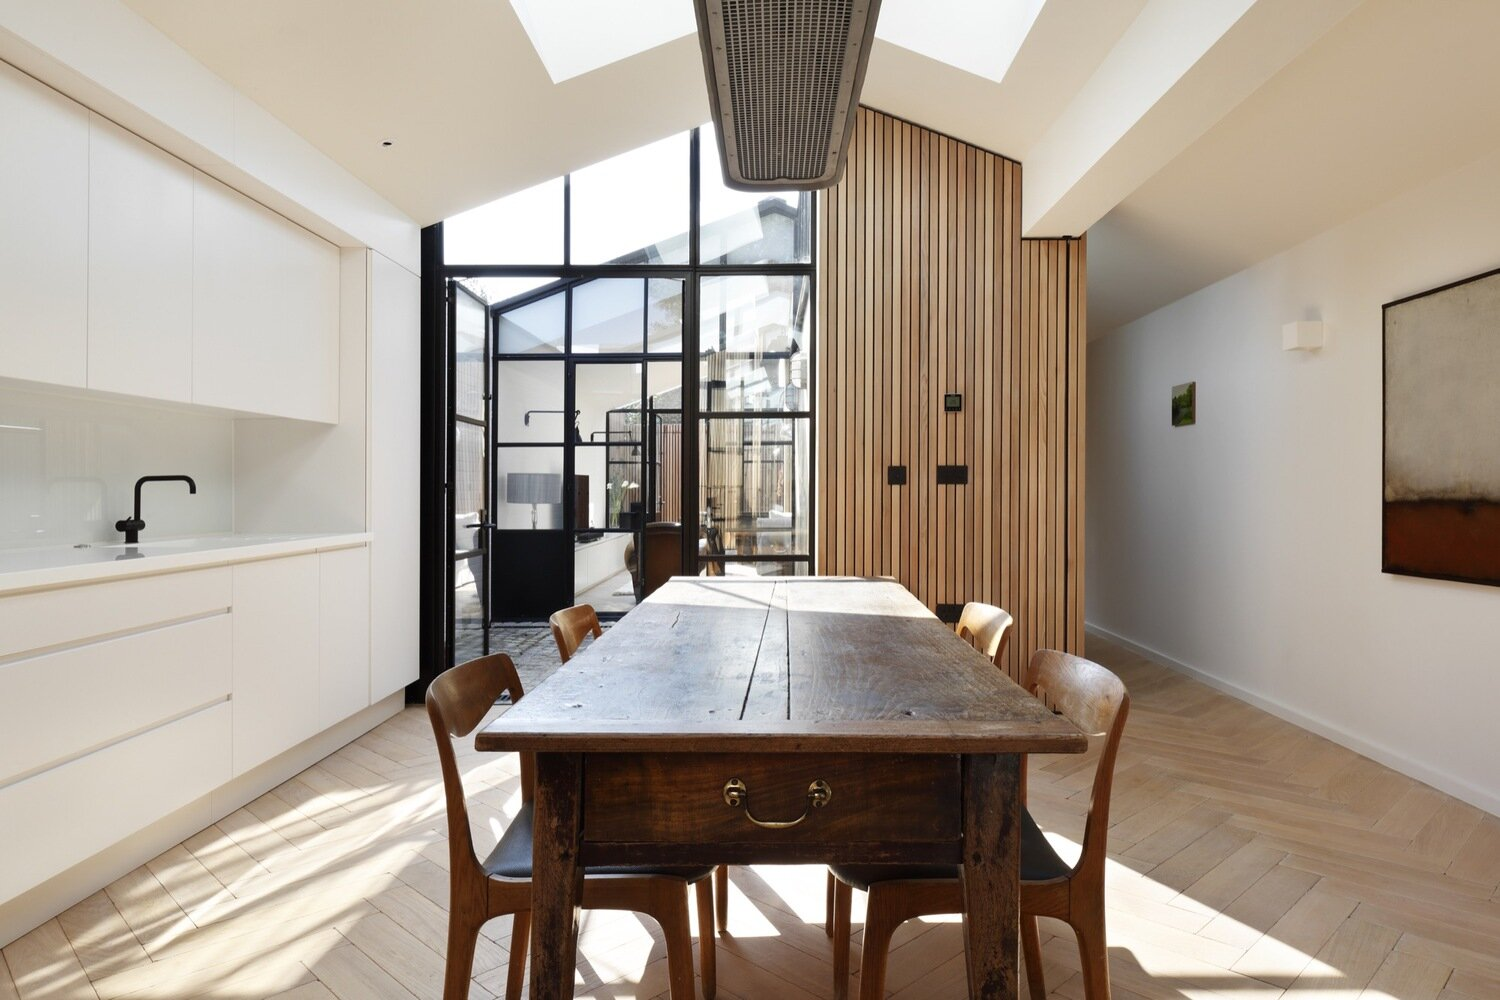 The-Courtyard-House-De-Rosee-Sa-United-Kingdom-Kitchen-Humble-Homes